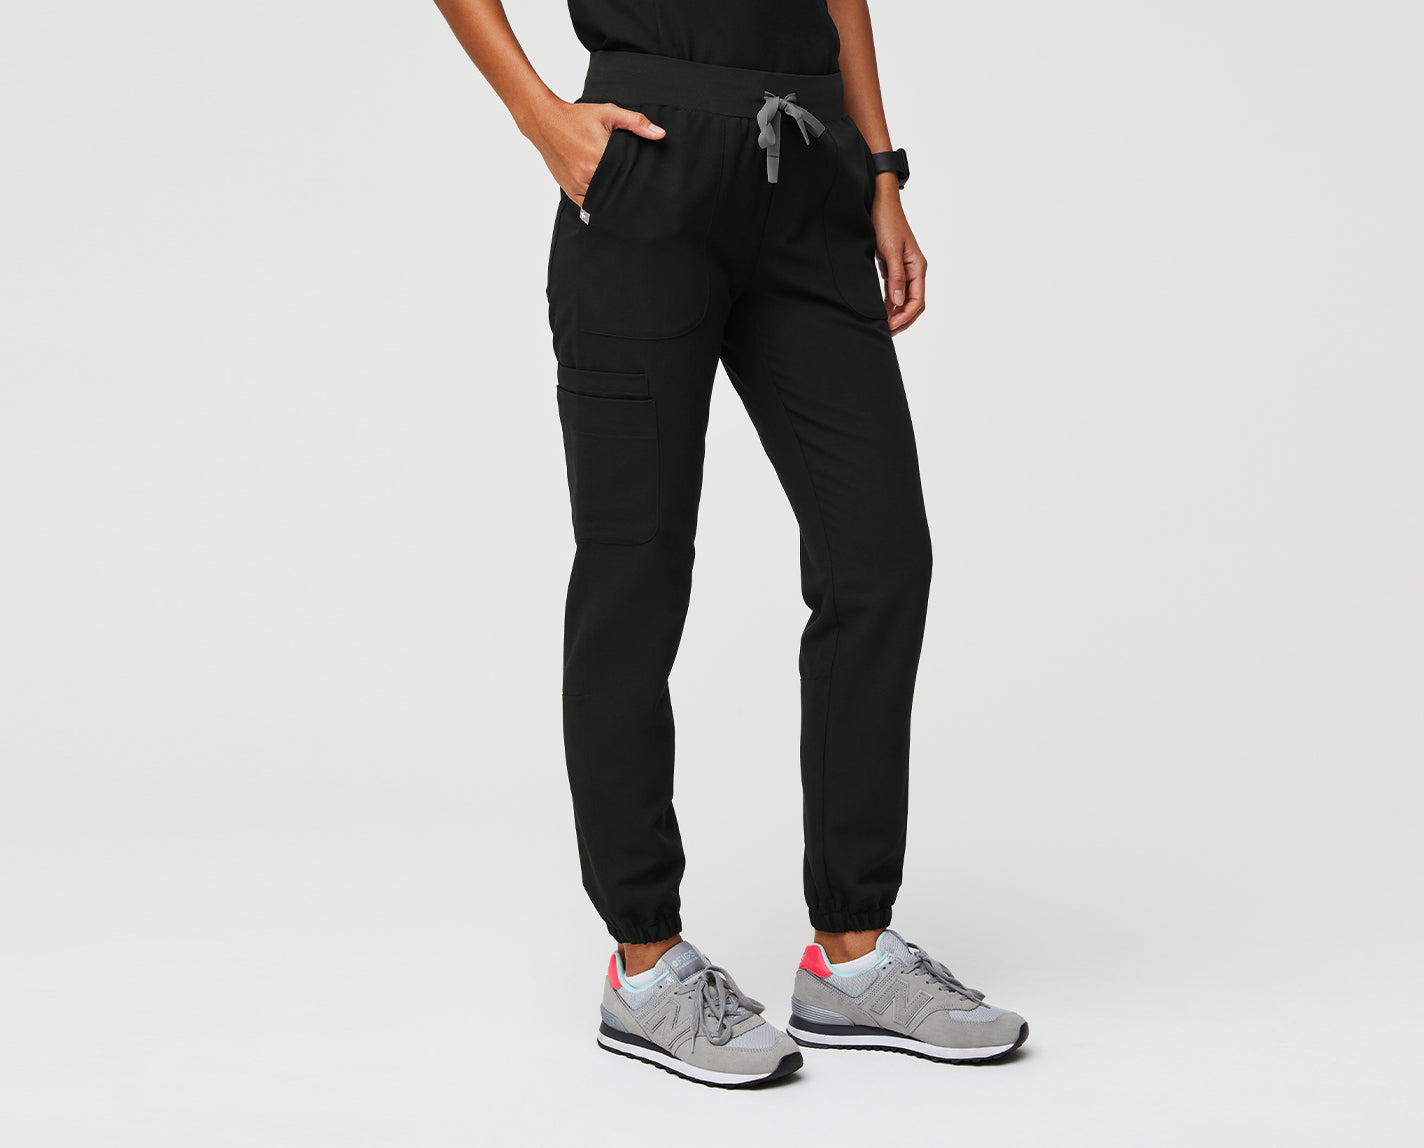 A good option for any day of the week. The Talodora Skinny Jogger features eight pockets, a yoga waistband and our proprietary FIONx fabric with Silvadur™ antimicrobial technology for odor control and fabric durability and four-way stretch, moisture-wicking, anti-wrinkle and ridiculously soft properties. Wear them whenever pants are needed.